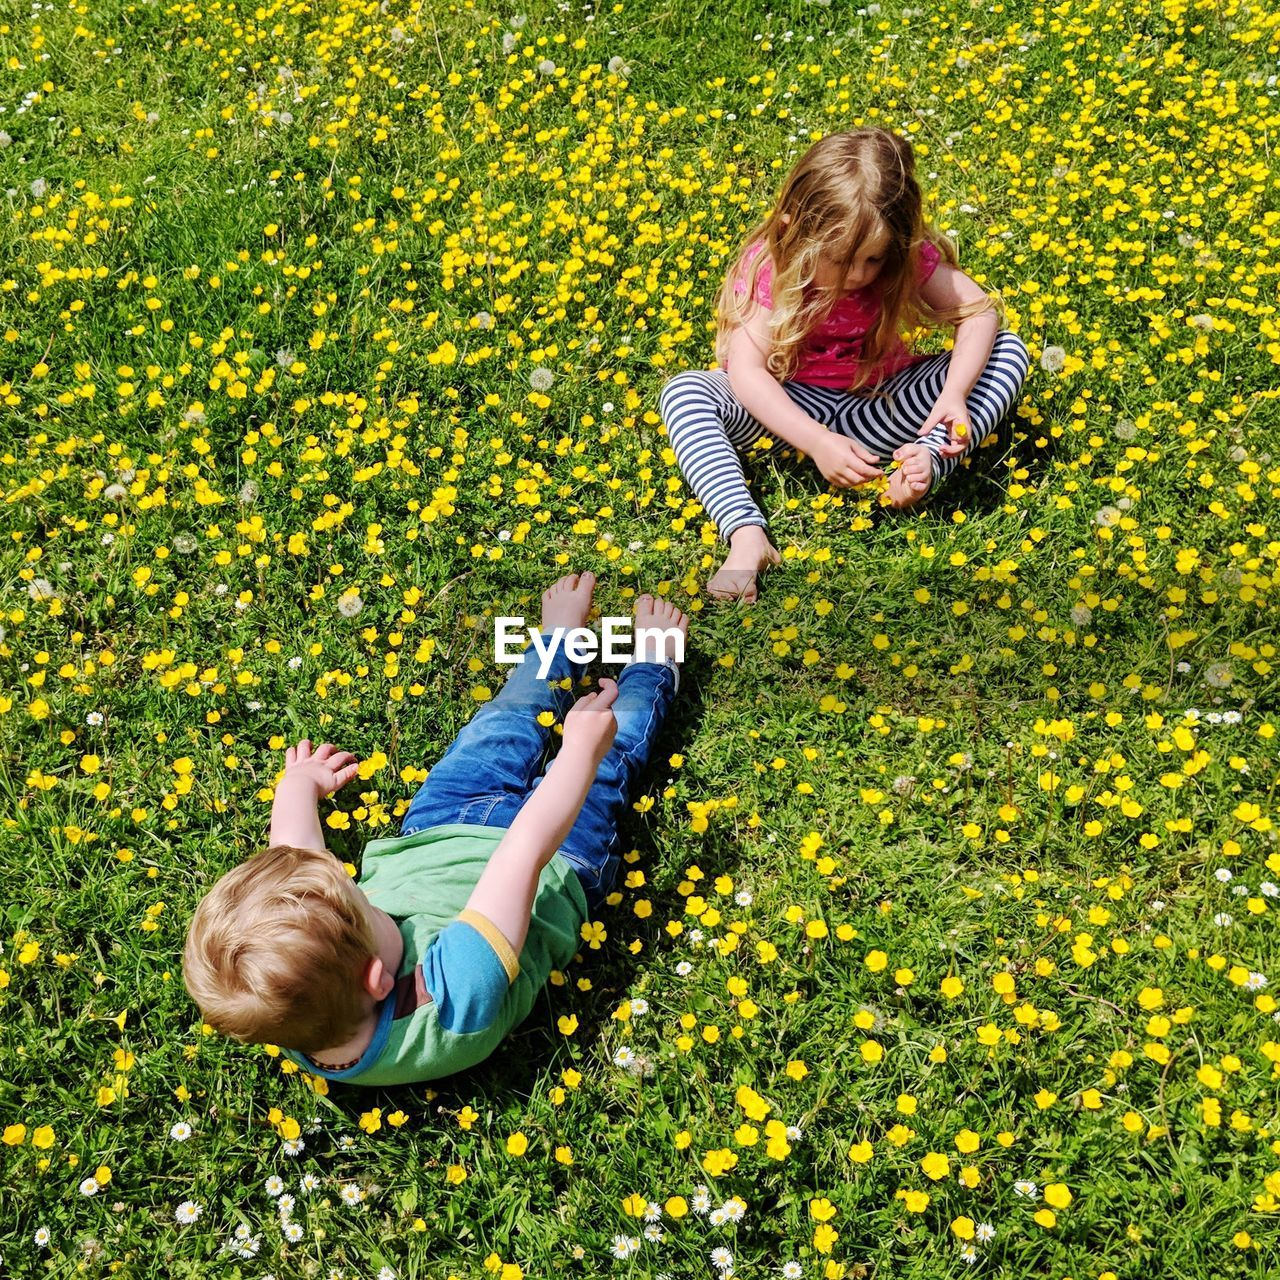 Girl with brother on flowering field during sunny day